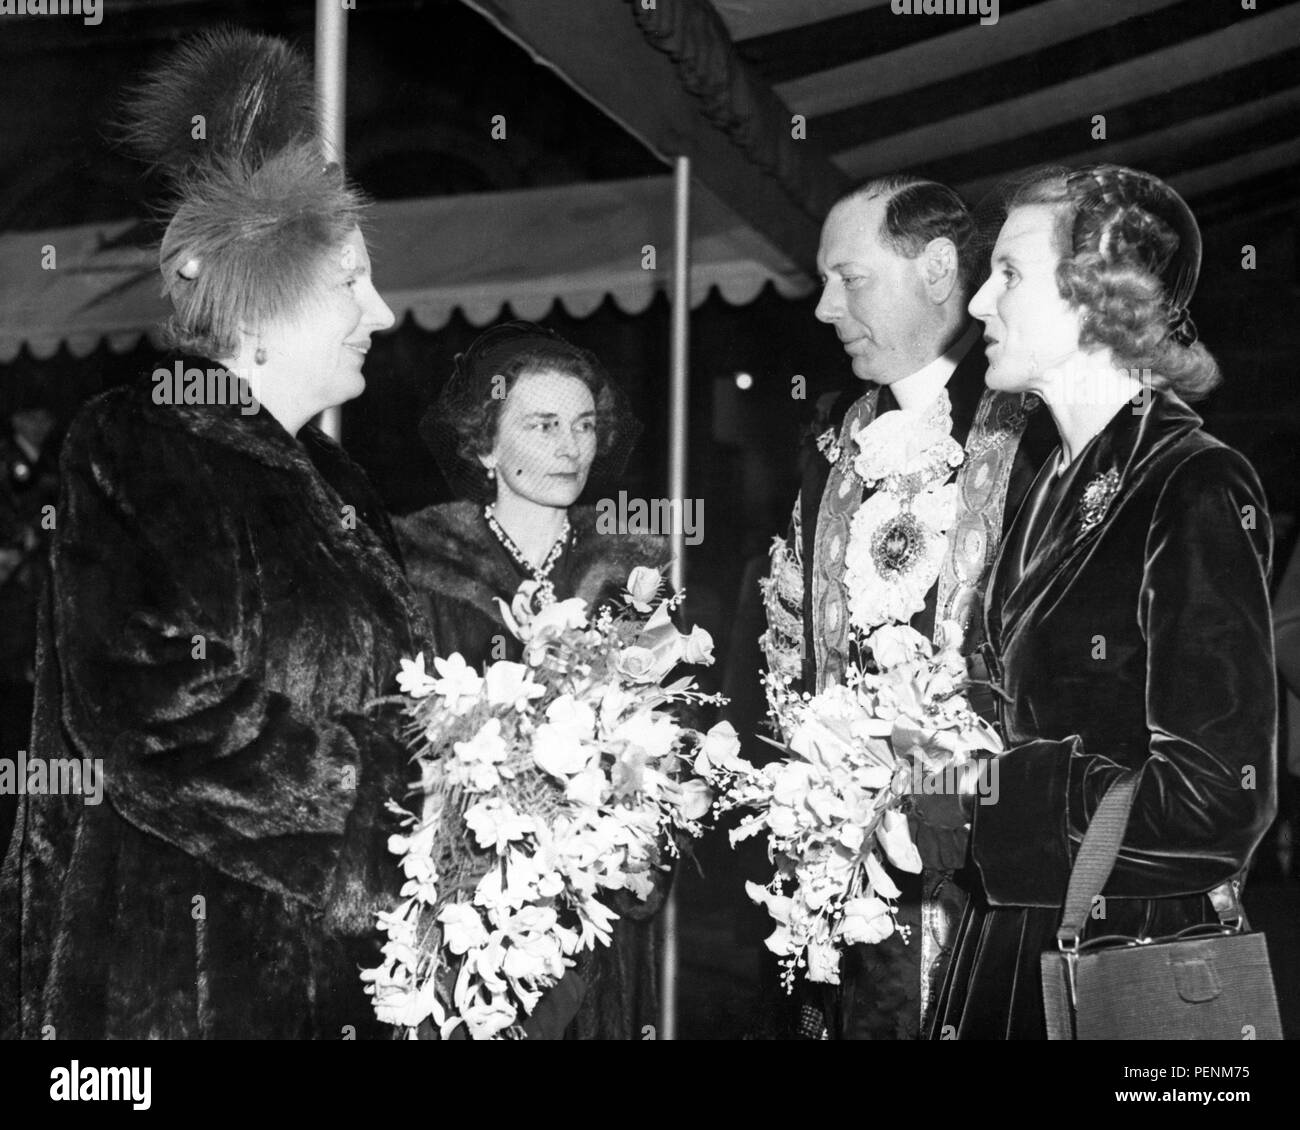 Queen Juliana of the Netherlands, wearing plumed grey hat, talks with the Duchess of Gloucester and the Lord Mayor and Lady Mayoress of London, Alderman and Mrs Denys Lowson, when she attended a banquet at the Guildhall. - Stock Image